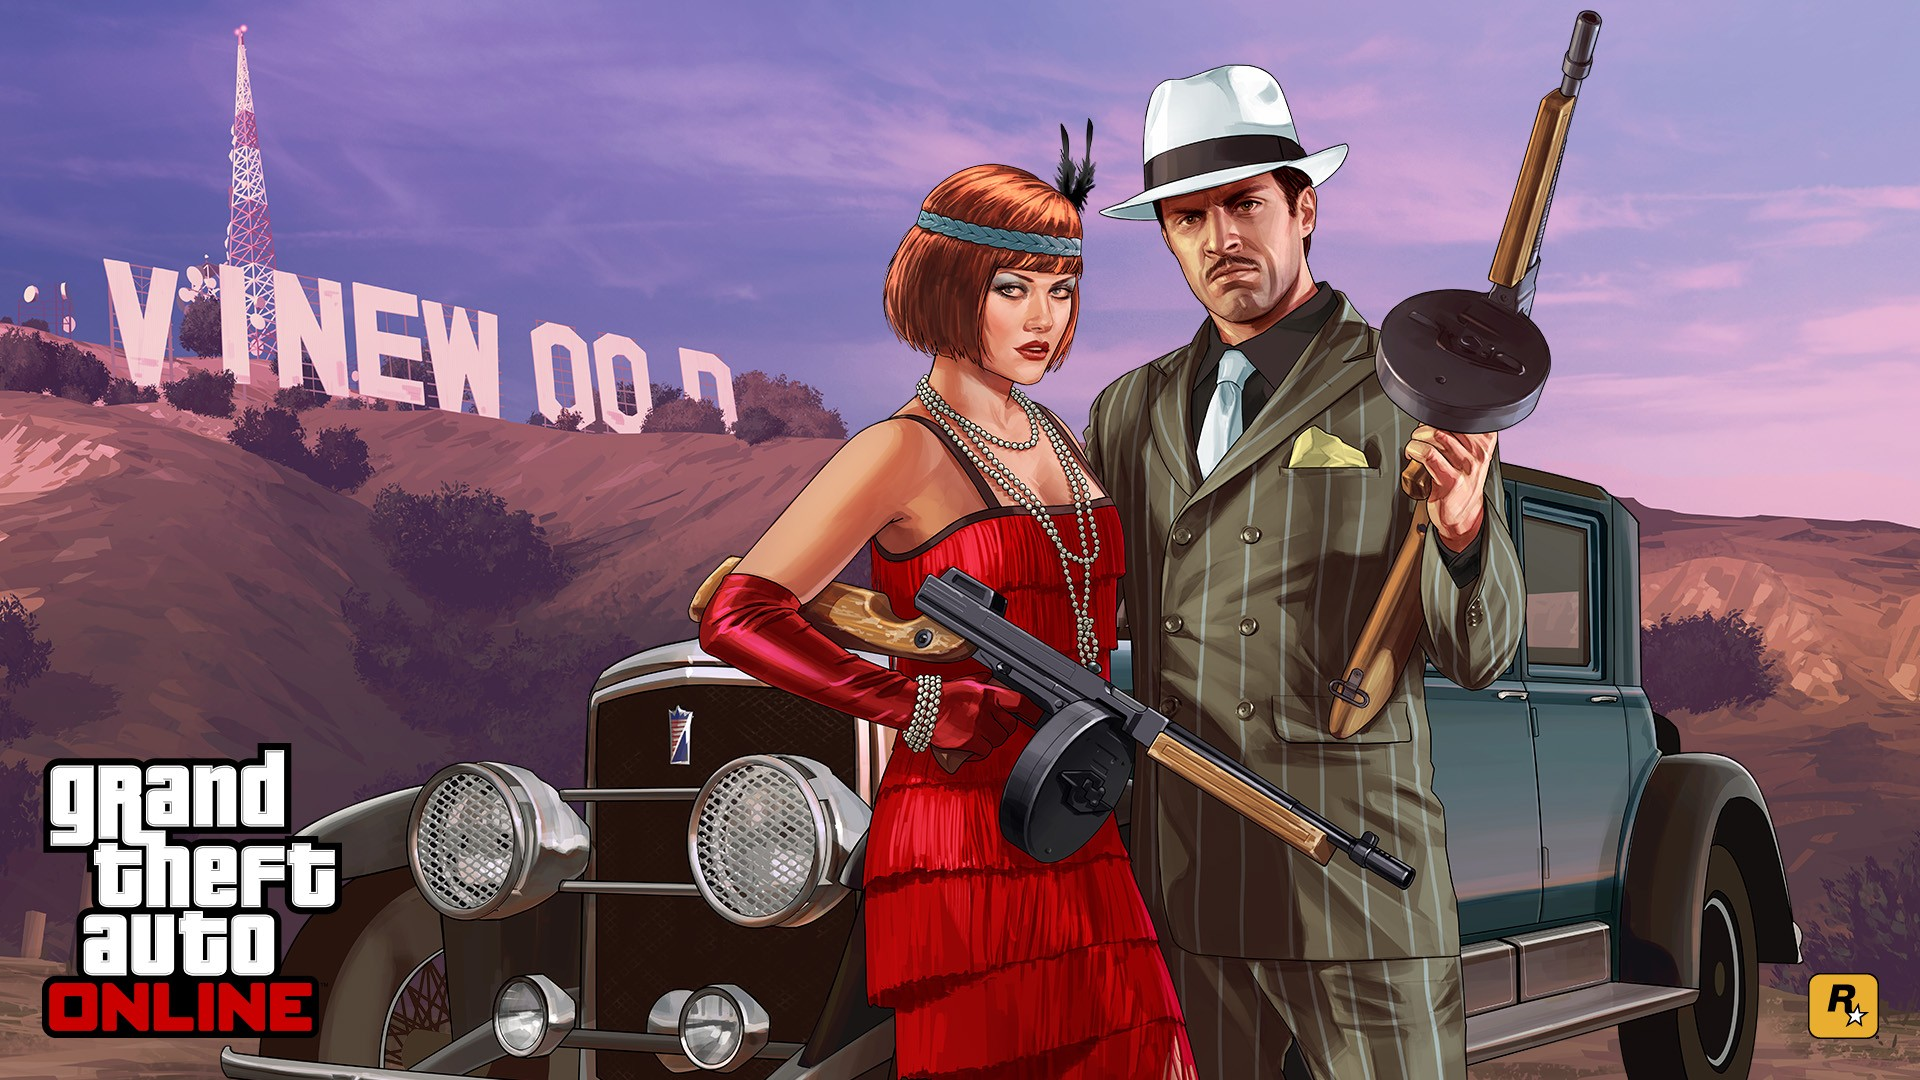 Grand Theft Auto Online Wallpapers 1 8 1920x1080